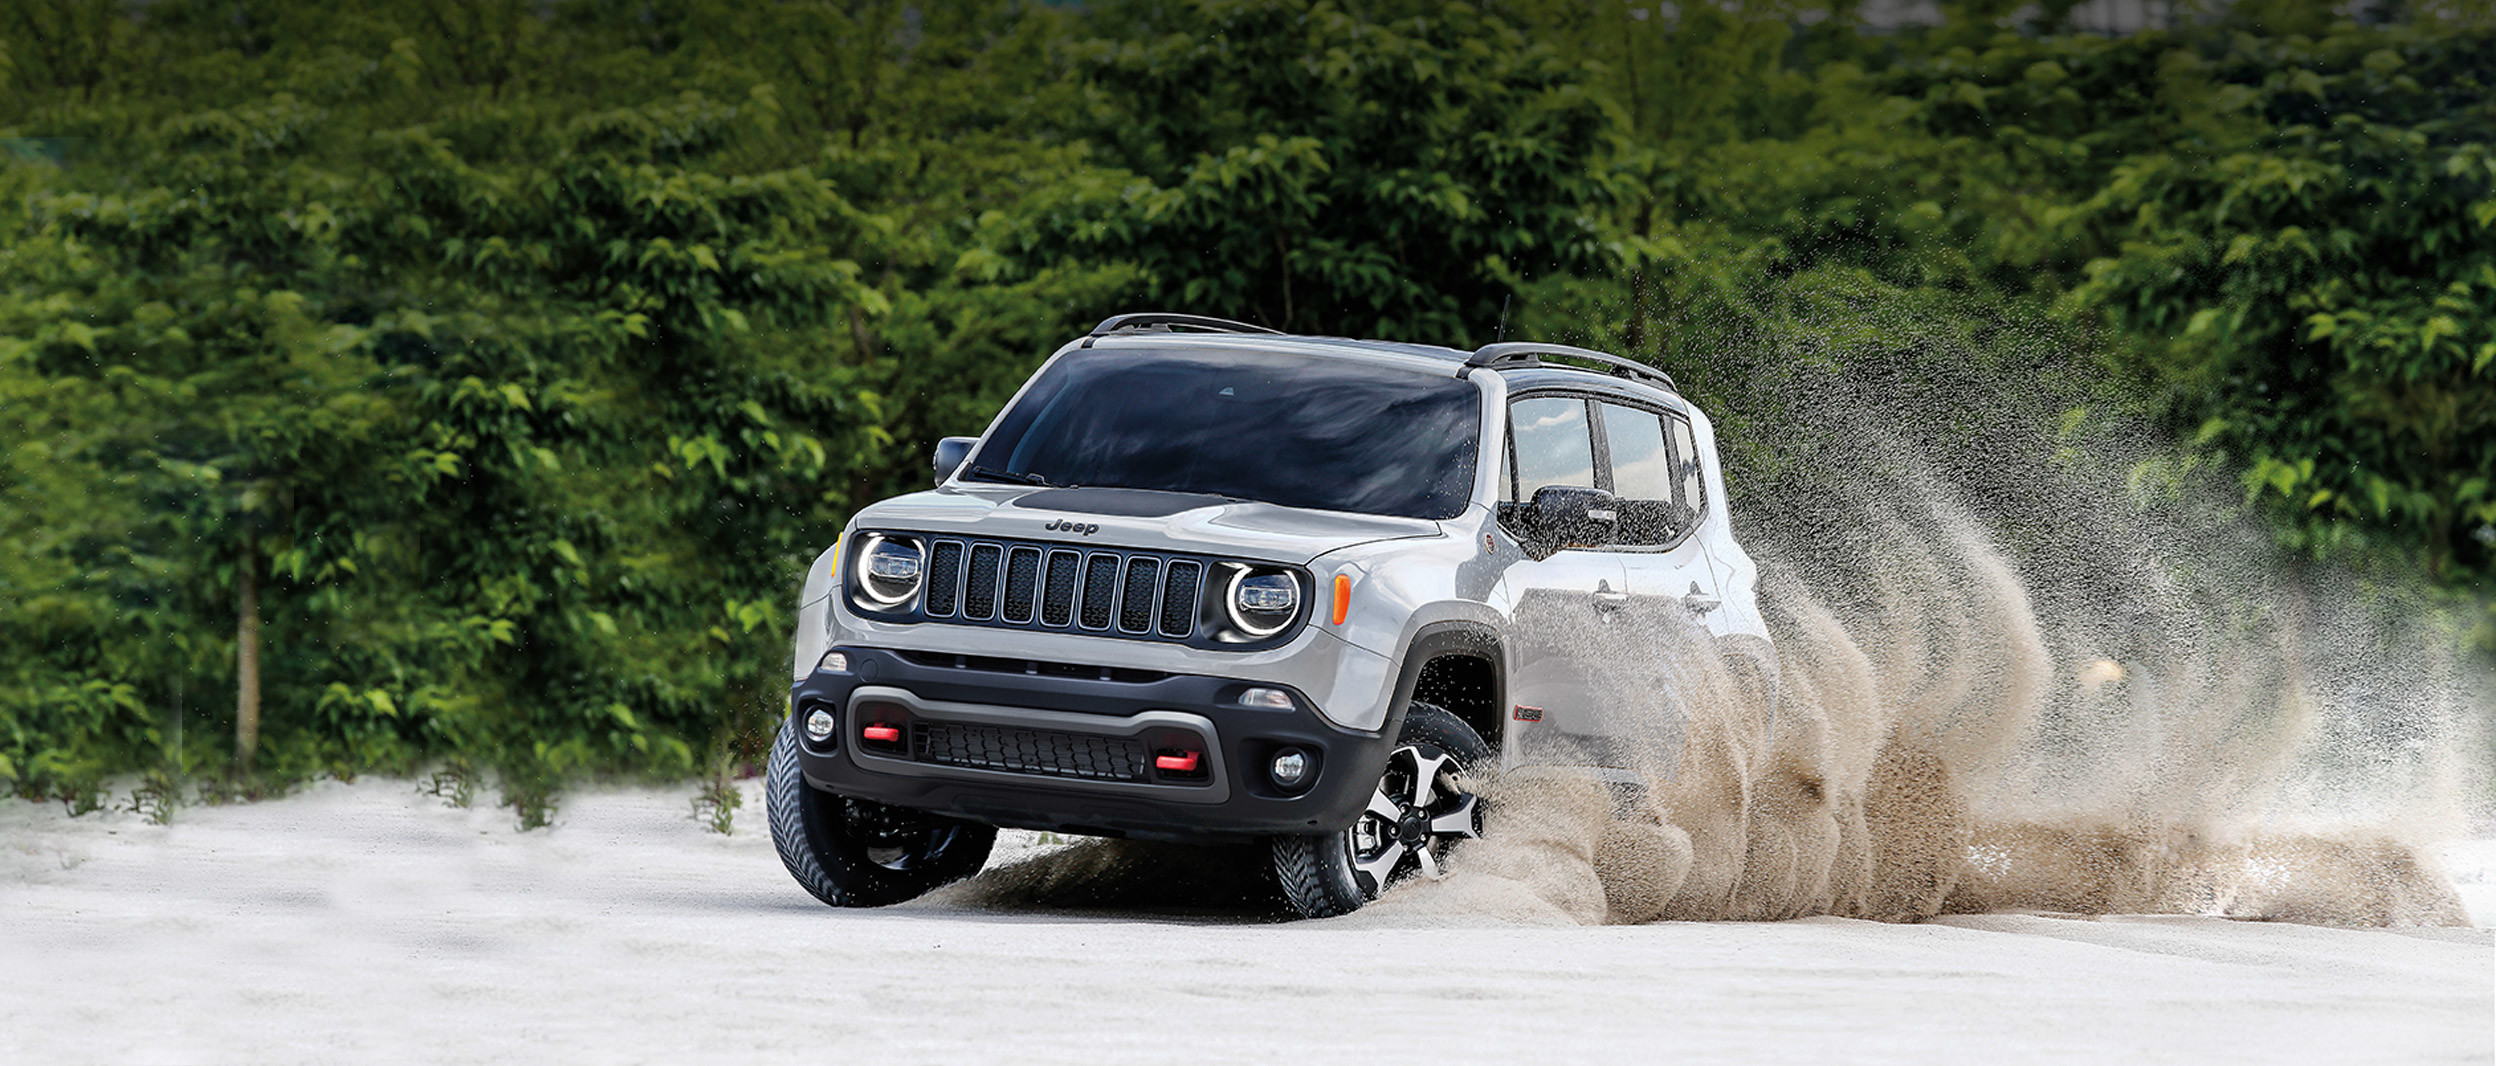 2019 Jeep Renegade silver exterior driving through sand